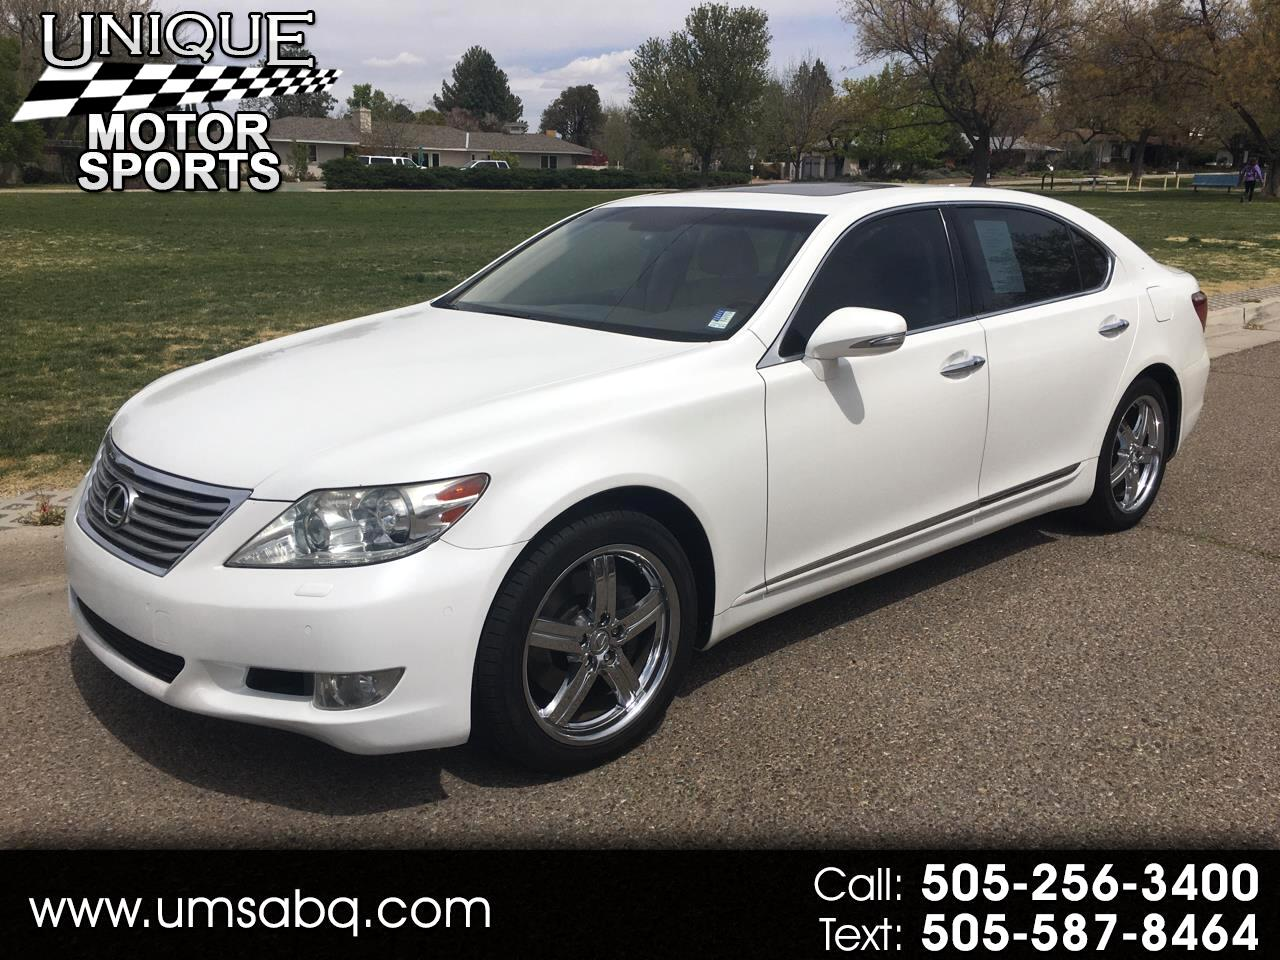 Lexus LS 460 L Luxury Sedan 2012